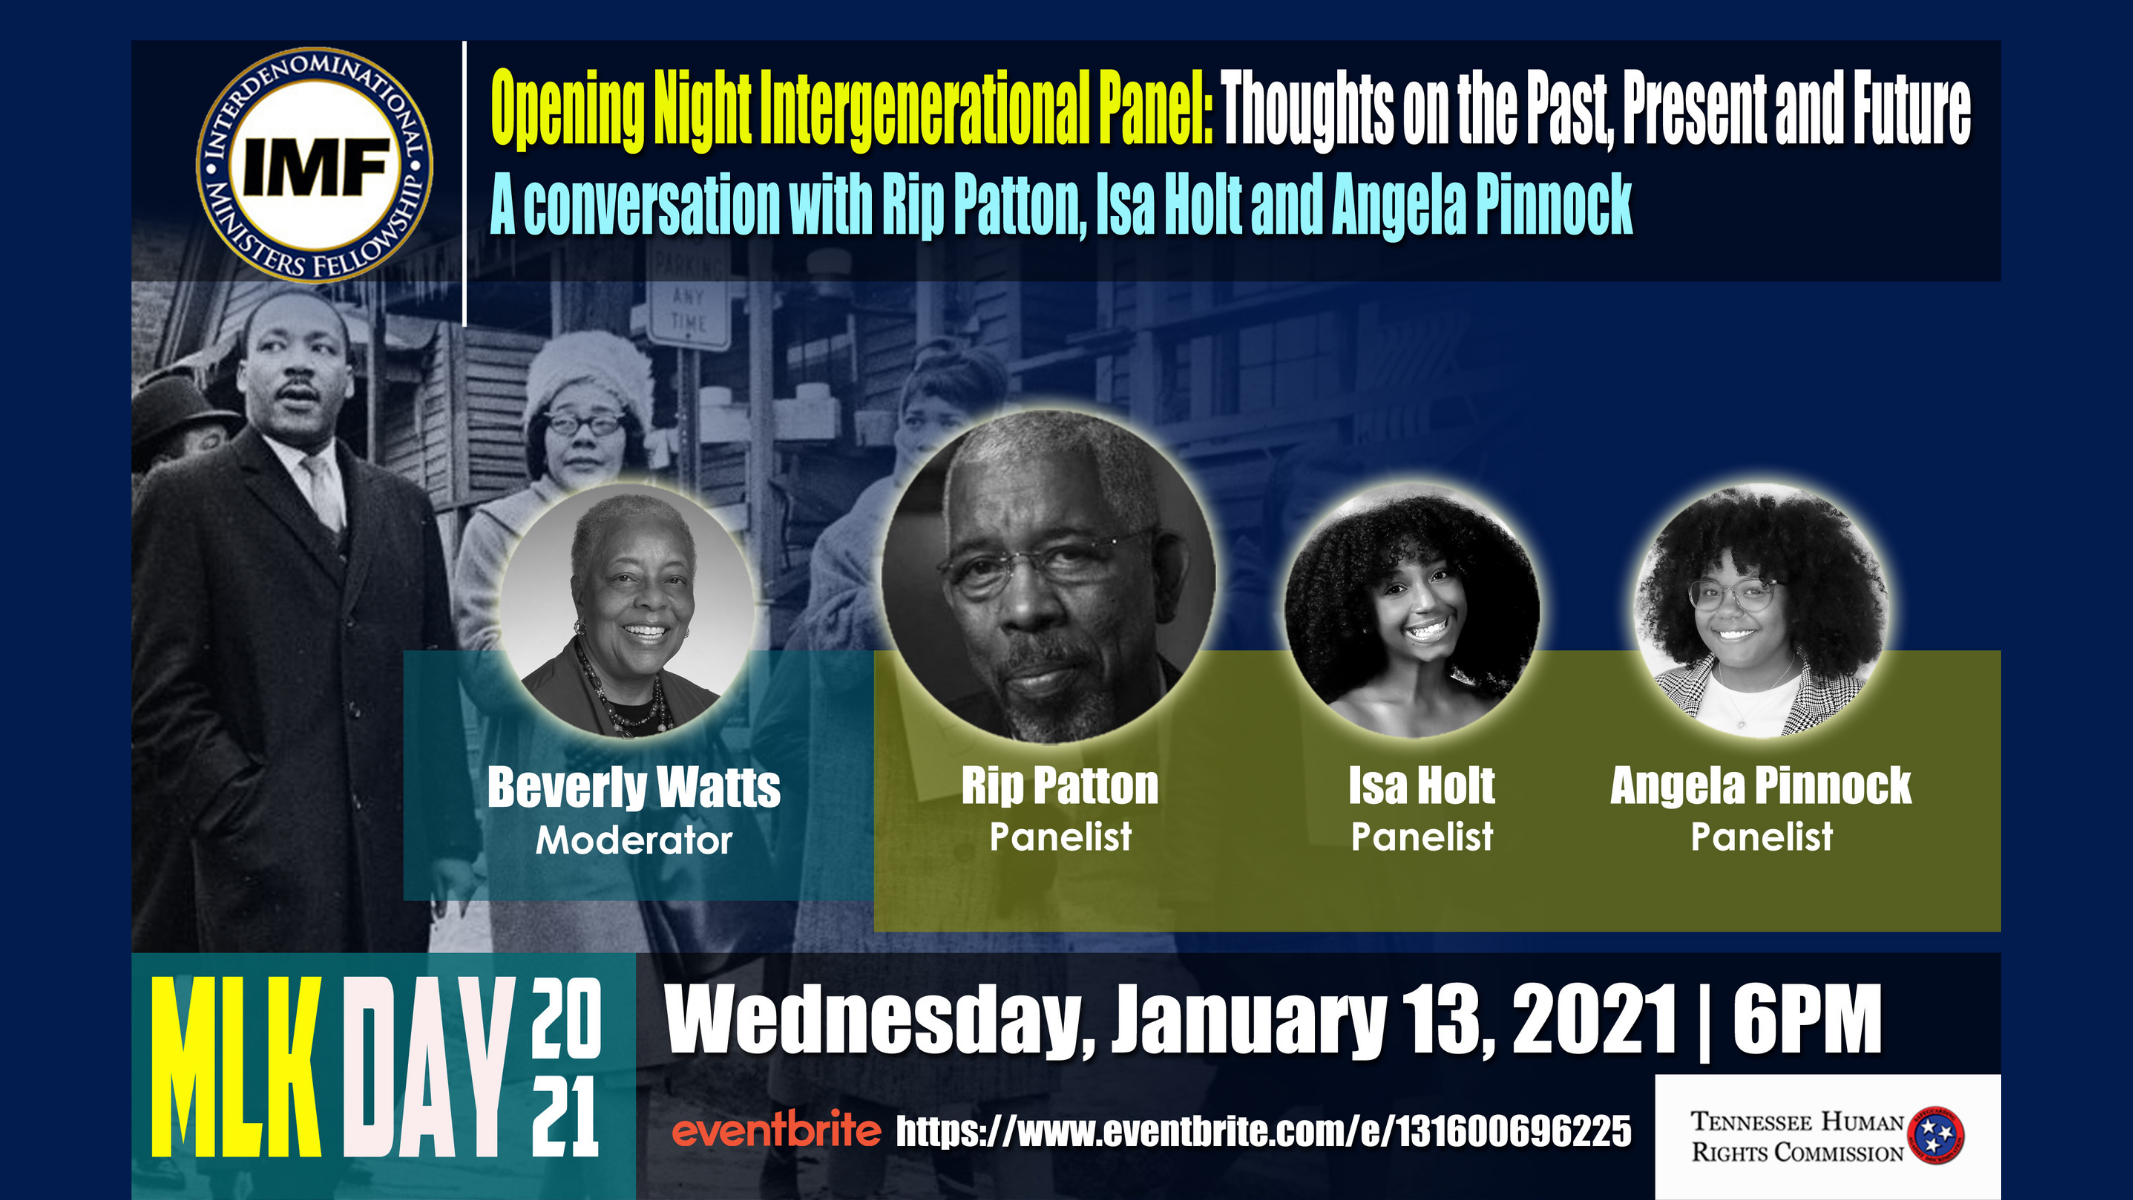 MLK Opening Night Intergenerational Panel: Thoughts on the Past, Present, and Future